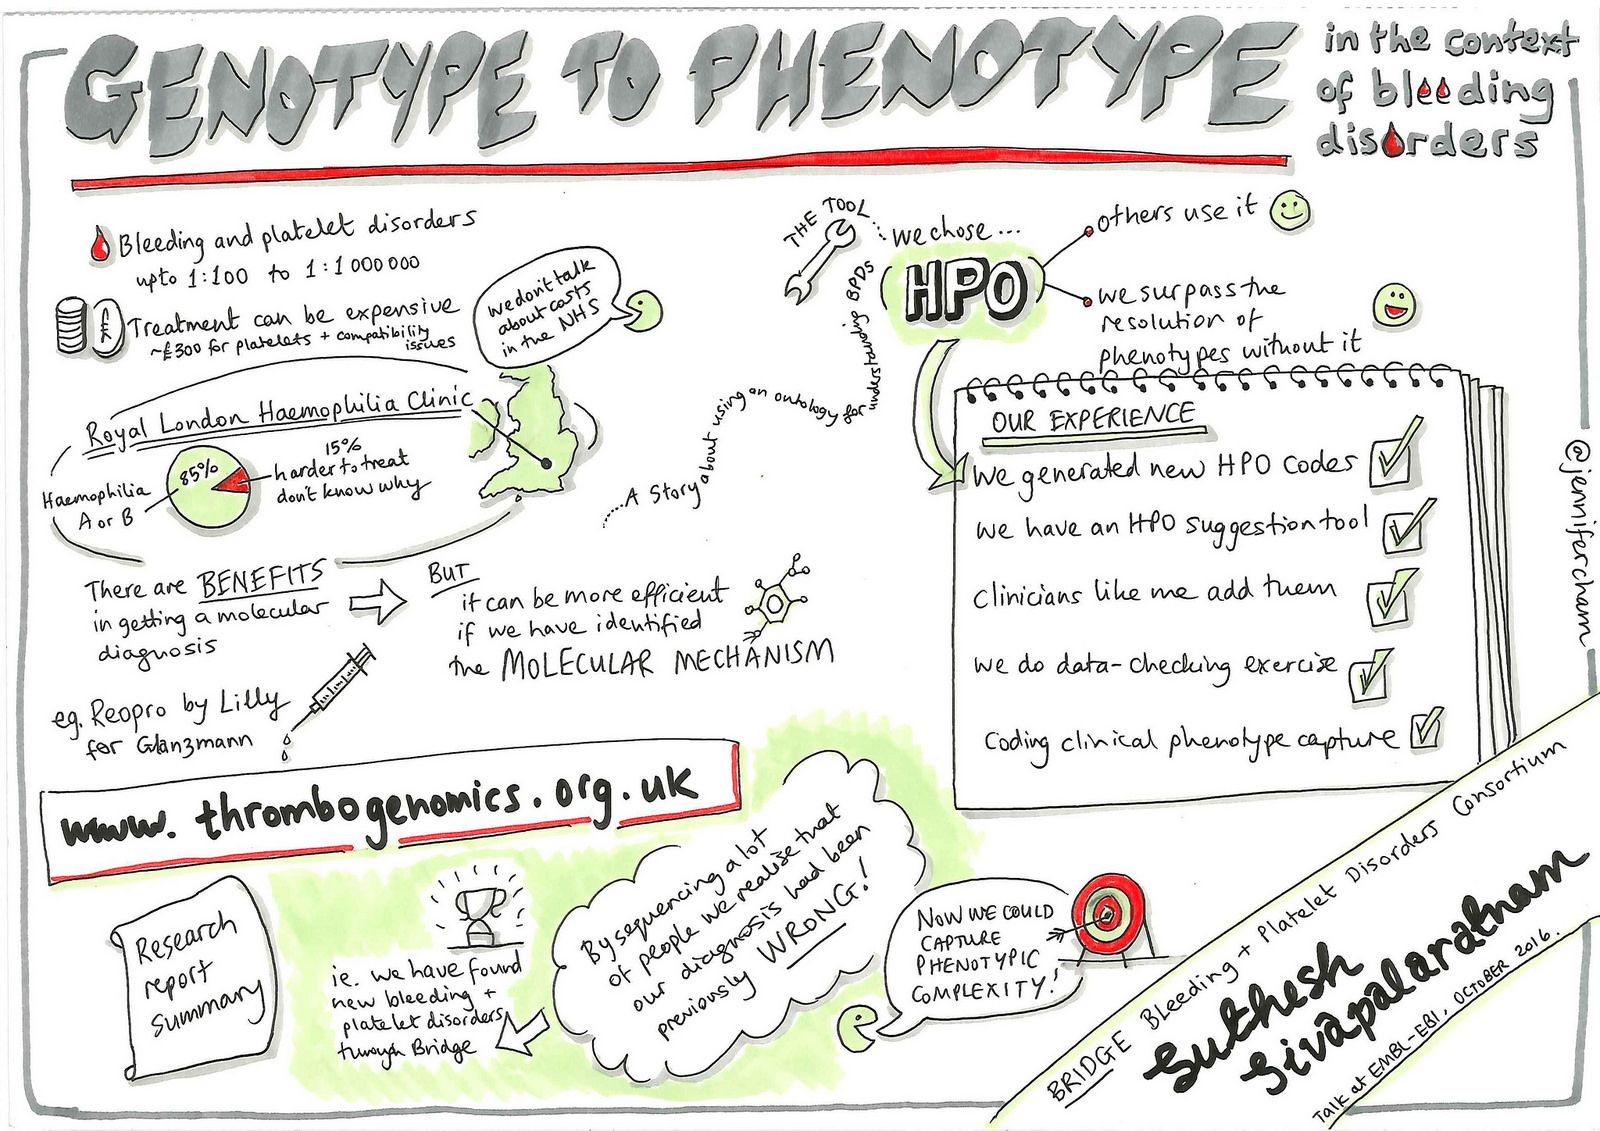 Genotype To Phenotype And Translation In The Context Of